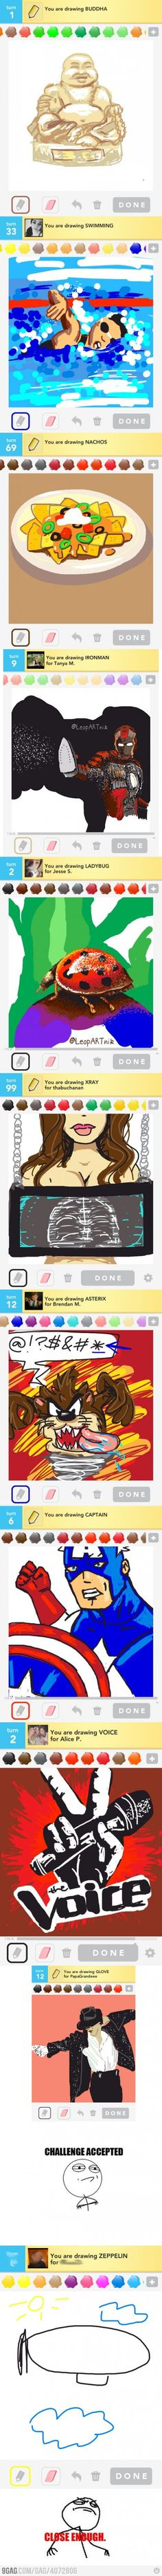 draw something pics - nothing compared to my stick figures!